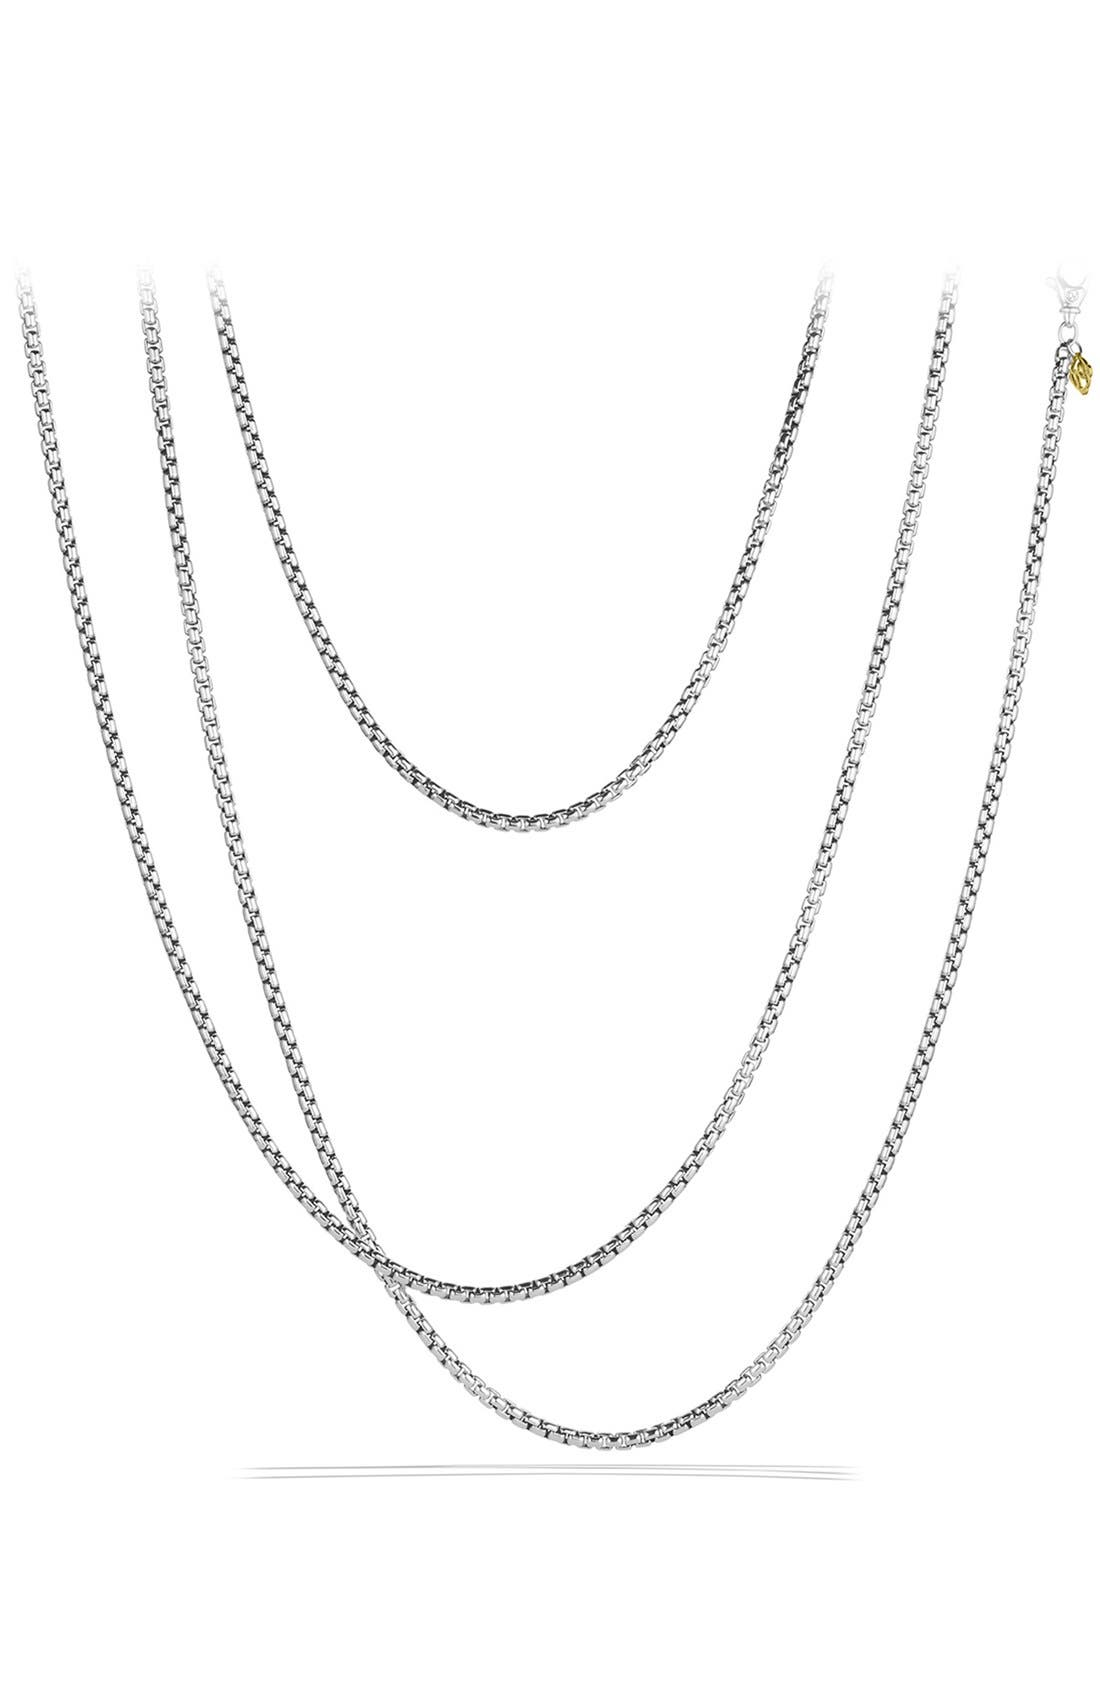 DAVID YURMAN,                             'Chain' Medium Box Chain with Gold,                             Main thumbnail 1, color,                             TWO TONE